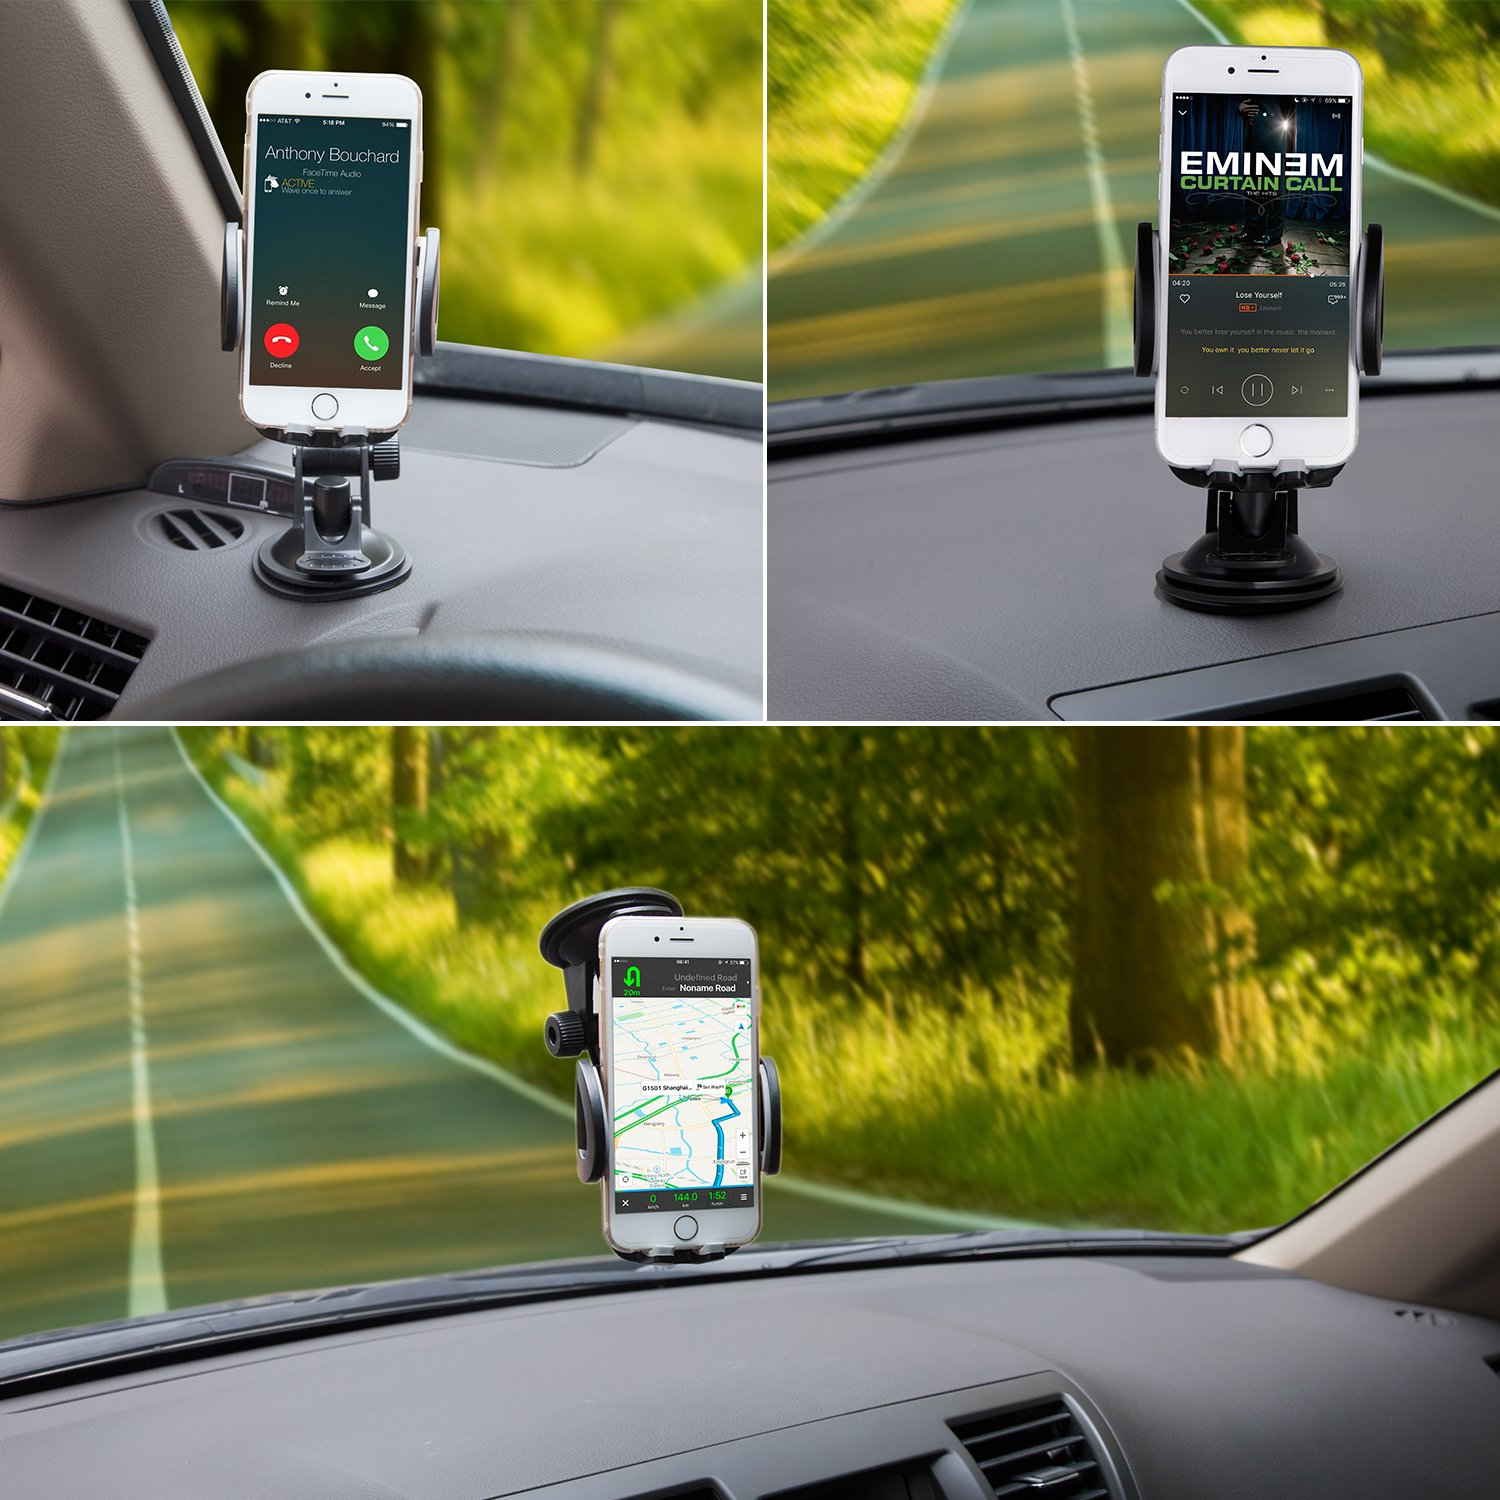 Dashboard Windshield Car Phone Holder Cradle with Quick Release Button for iPhone X 8 7 SE 6S 6 Samsung Galaxy S10 S9 S8 S7 S6 S5 Amoner Car Mount Second Generation